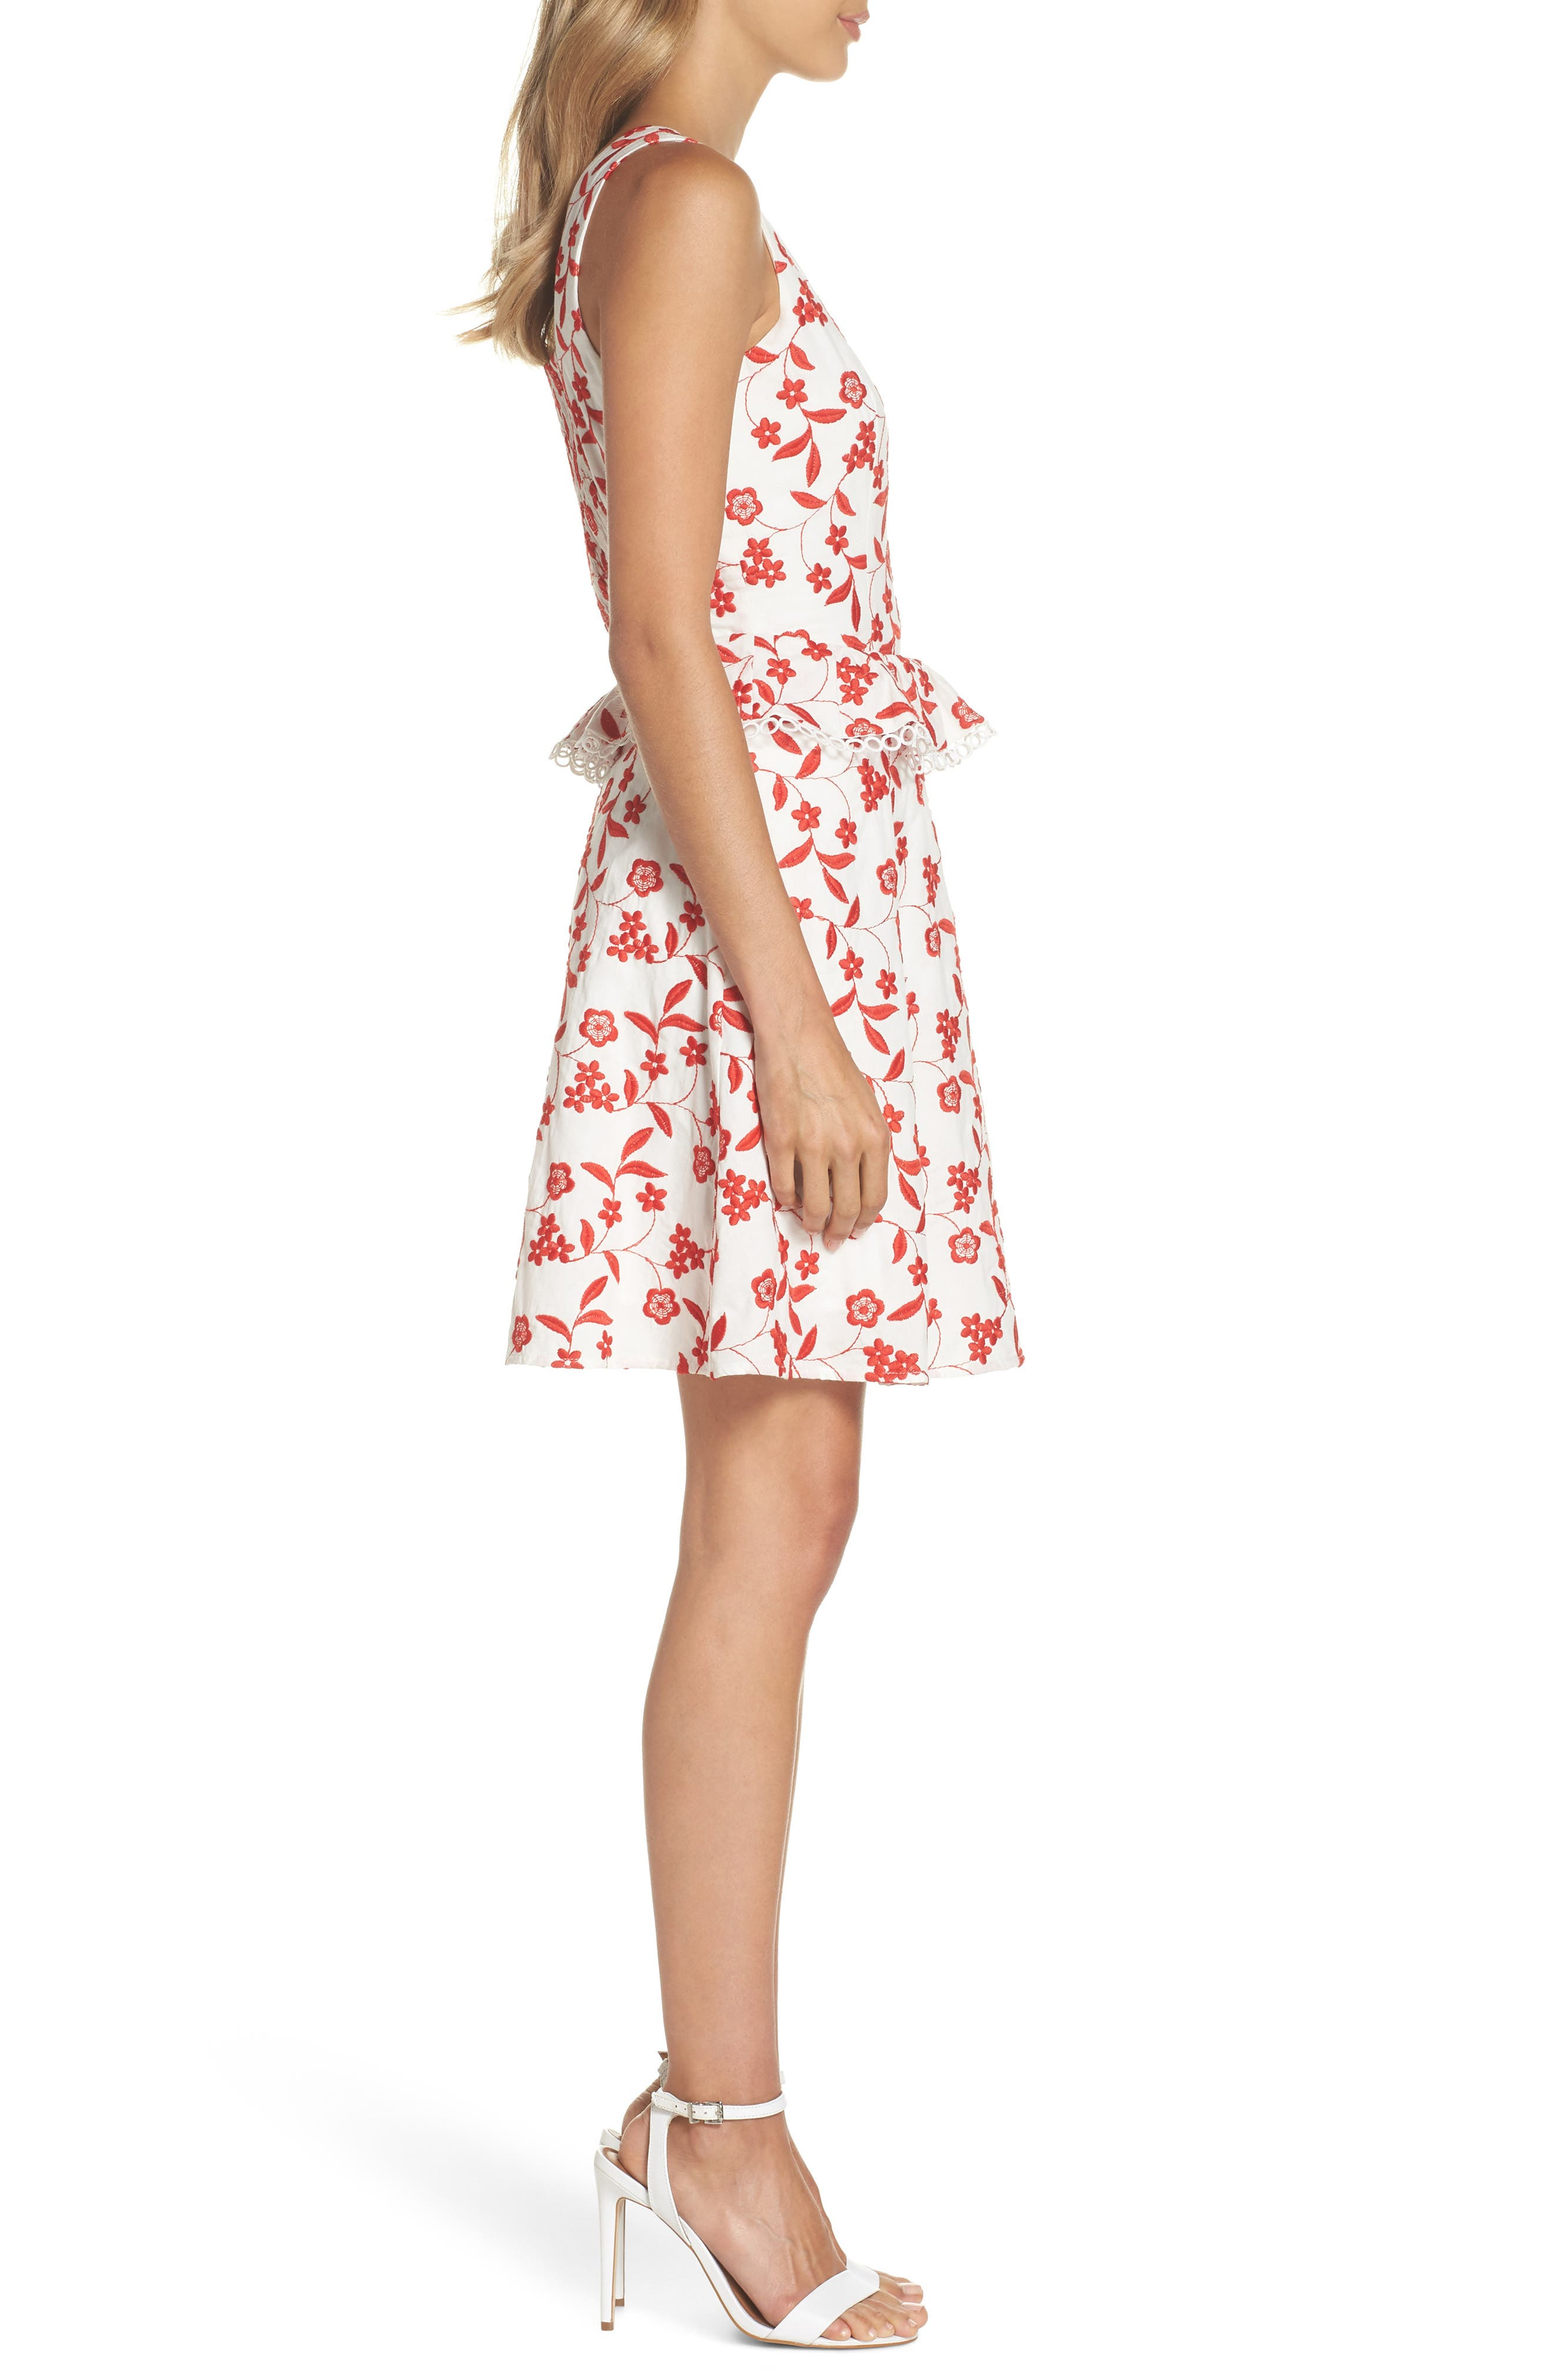 Aubrey Embroidered Cotton Dress,                             Alternate thumbnail 3, color,                             600